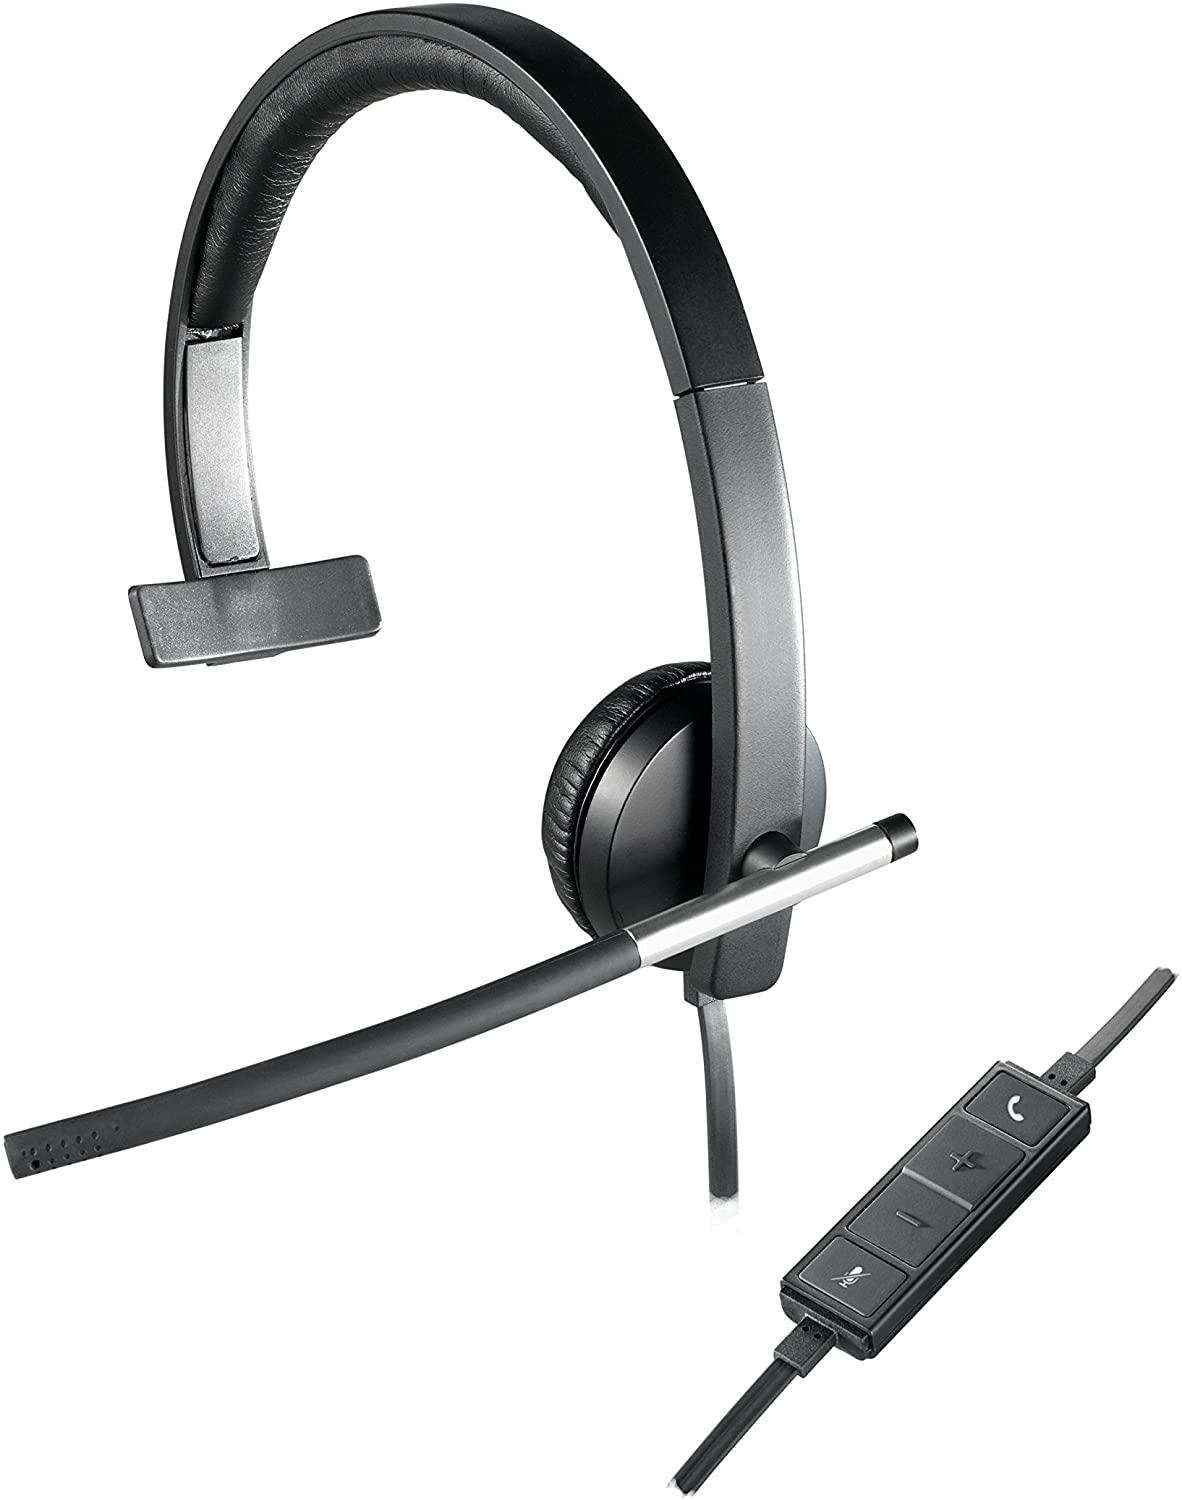 Mono Headphone with Noise-Cancelling Microphone USB In-Line Controls Indicator LED PC//Mac//Laptop Logitech H650e Wired Headset